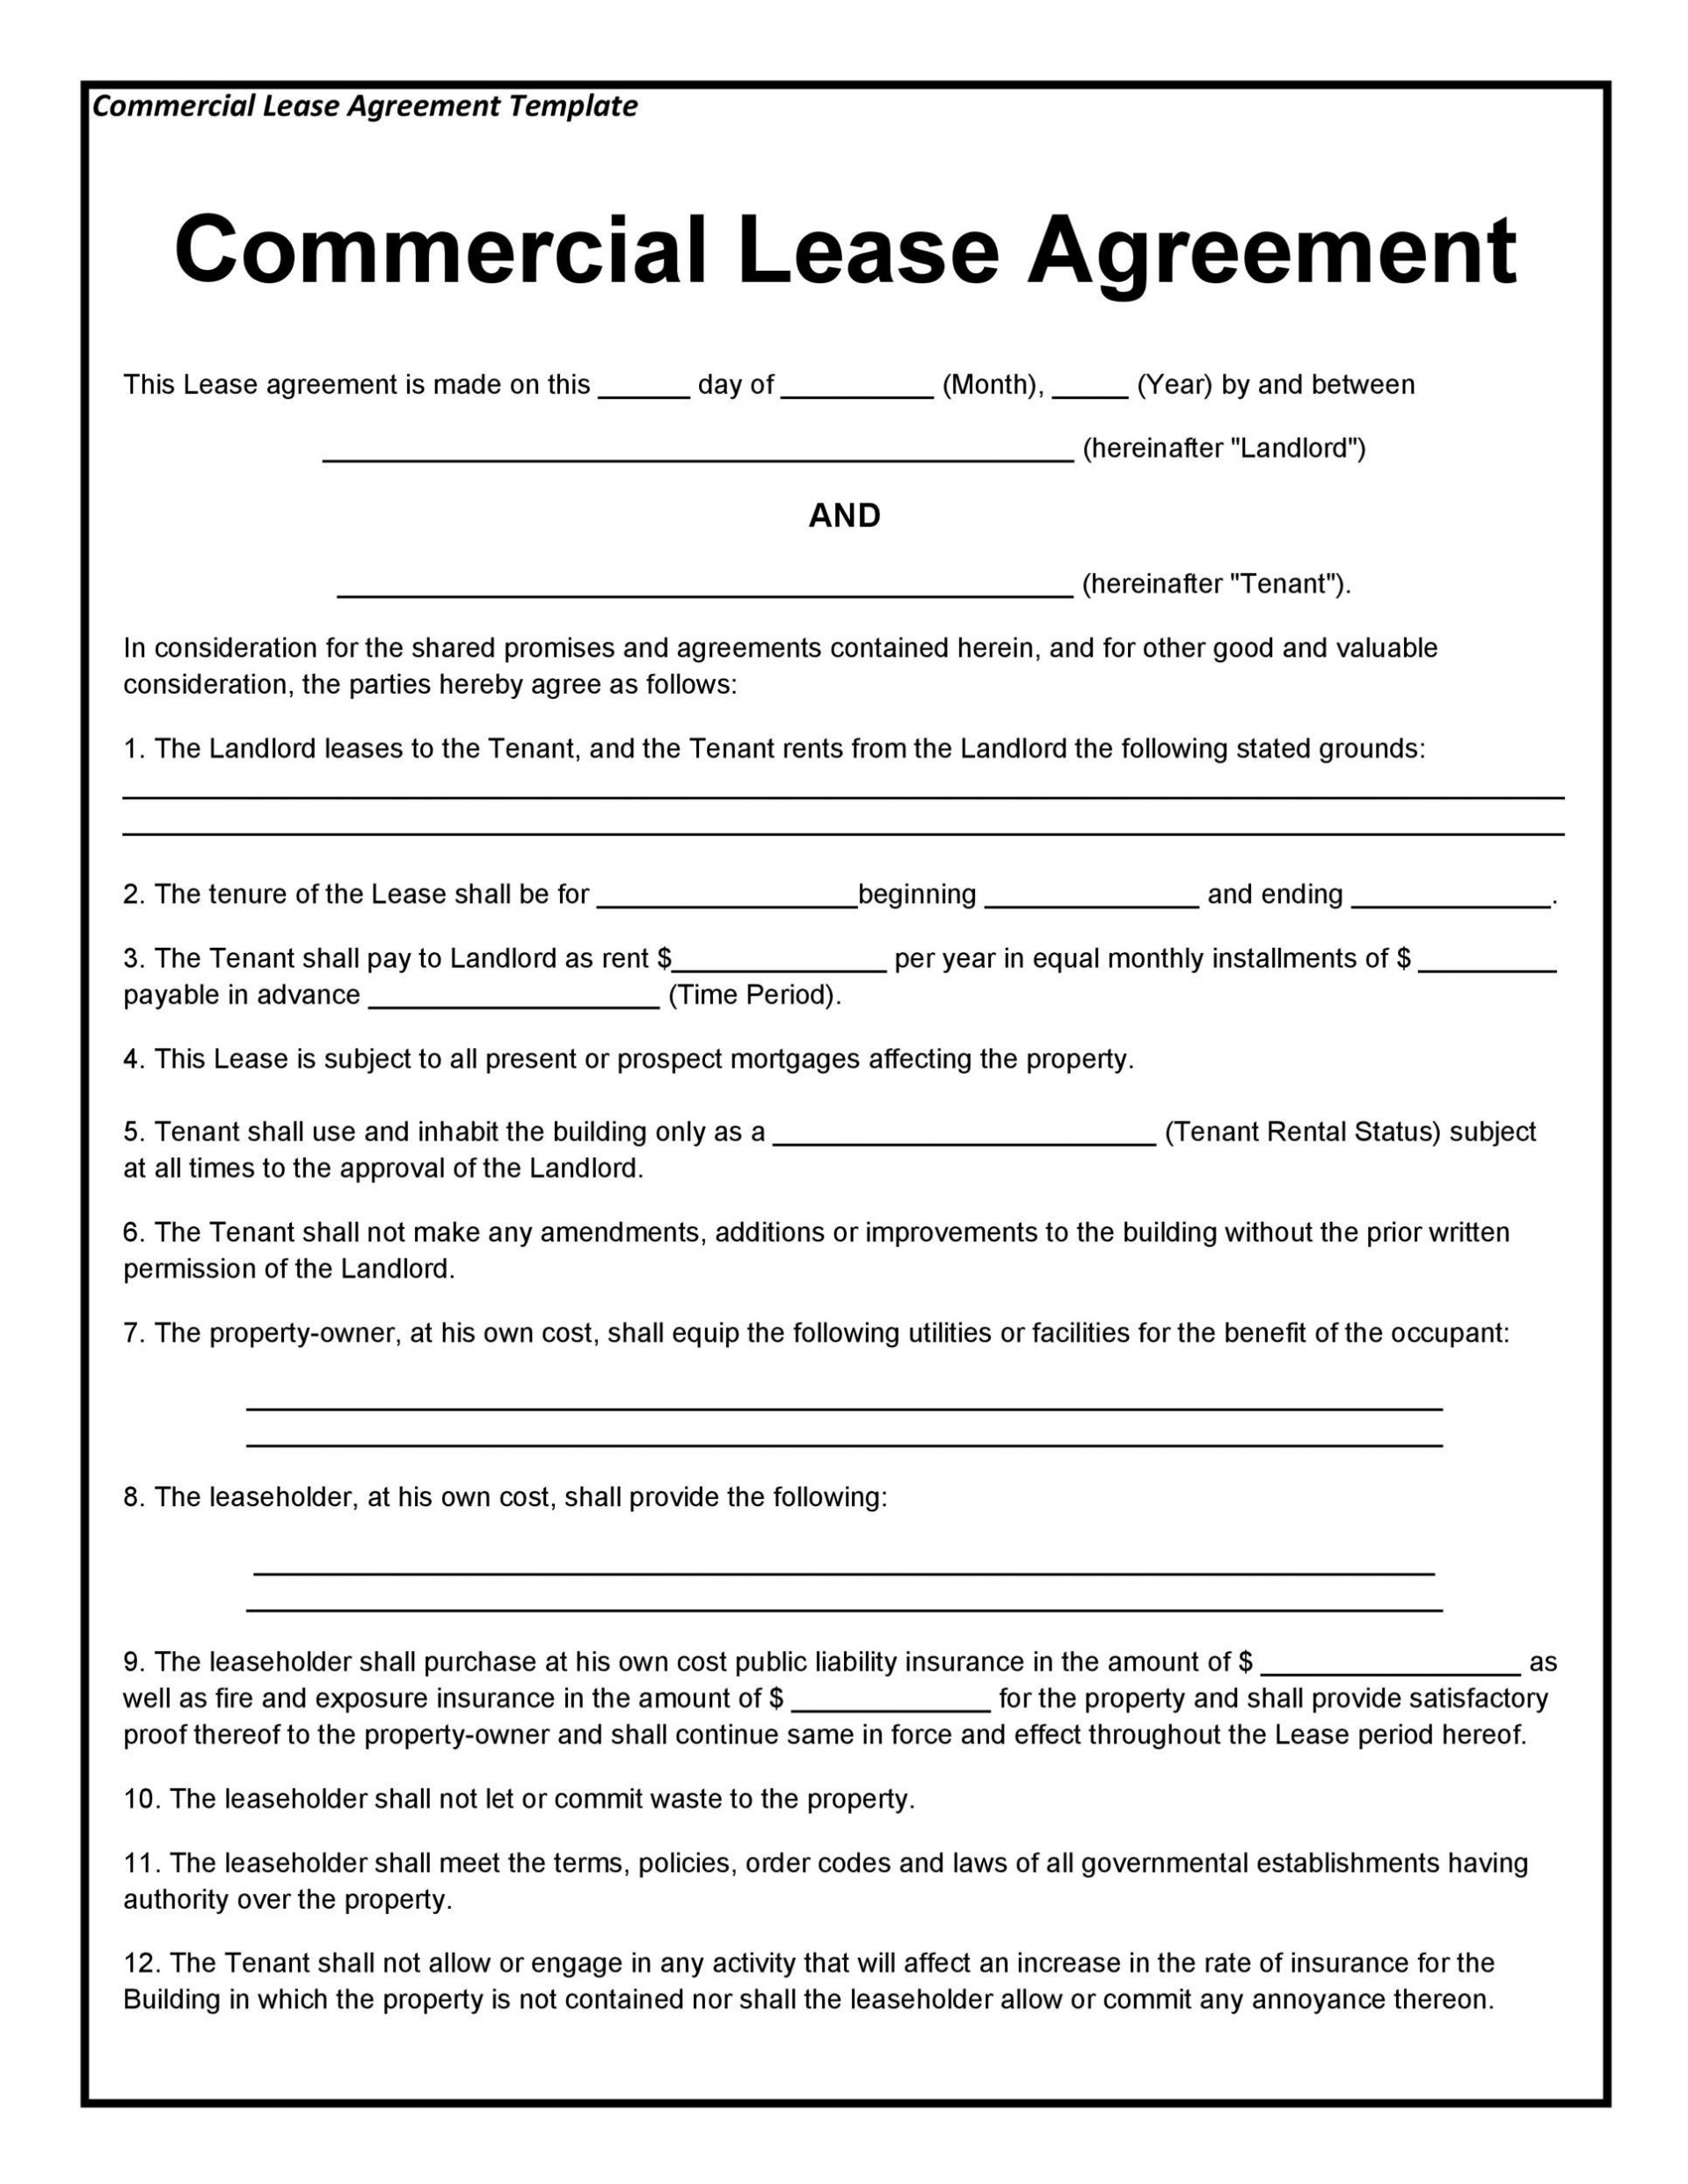 005 Outstanding Rental House Contract Template Free Image  Agreement Form Property Lease1920